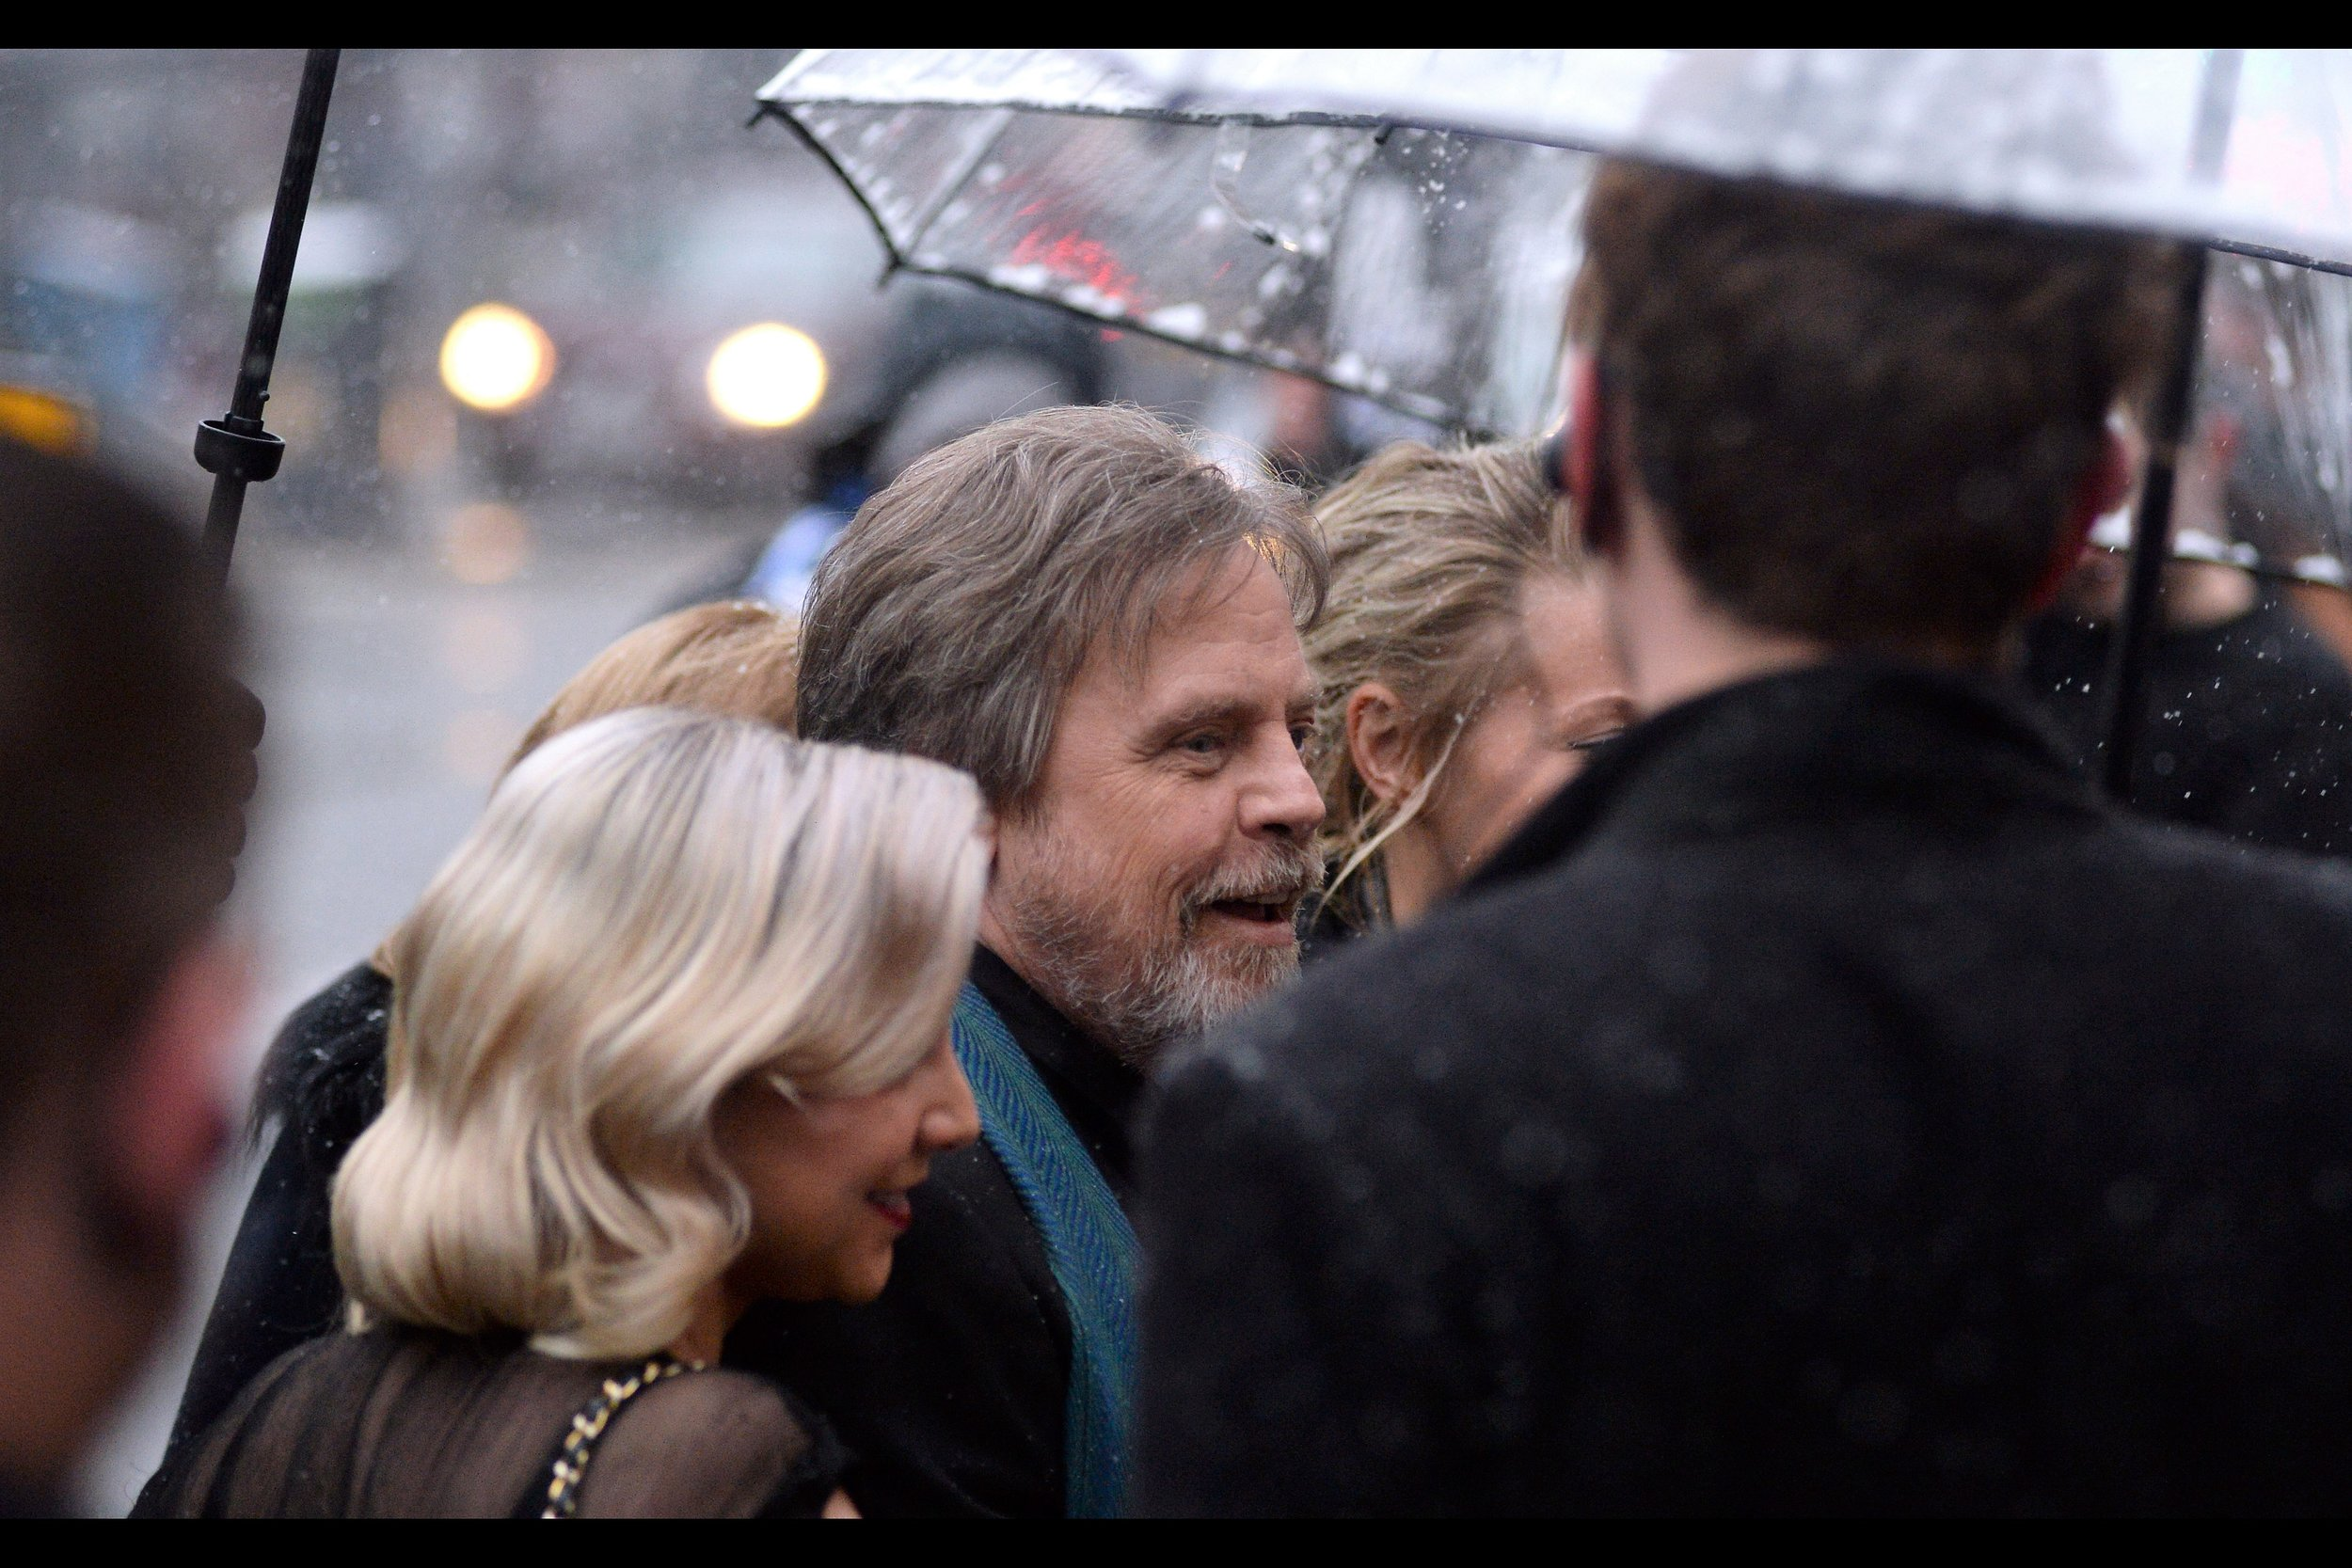 Sadly, this is as good a photo of Mark Hamill as I was able to take, owing to the clamouring of security, PAs, photographers, soothsayers, passersby, (probably) his family, errant cameras, mobile phones, heads, beanies, and even particularly enthusiastic flakes of snow.